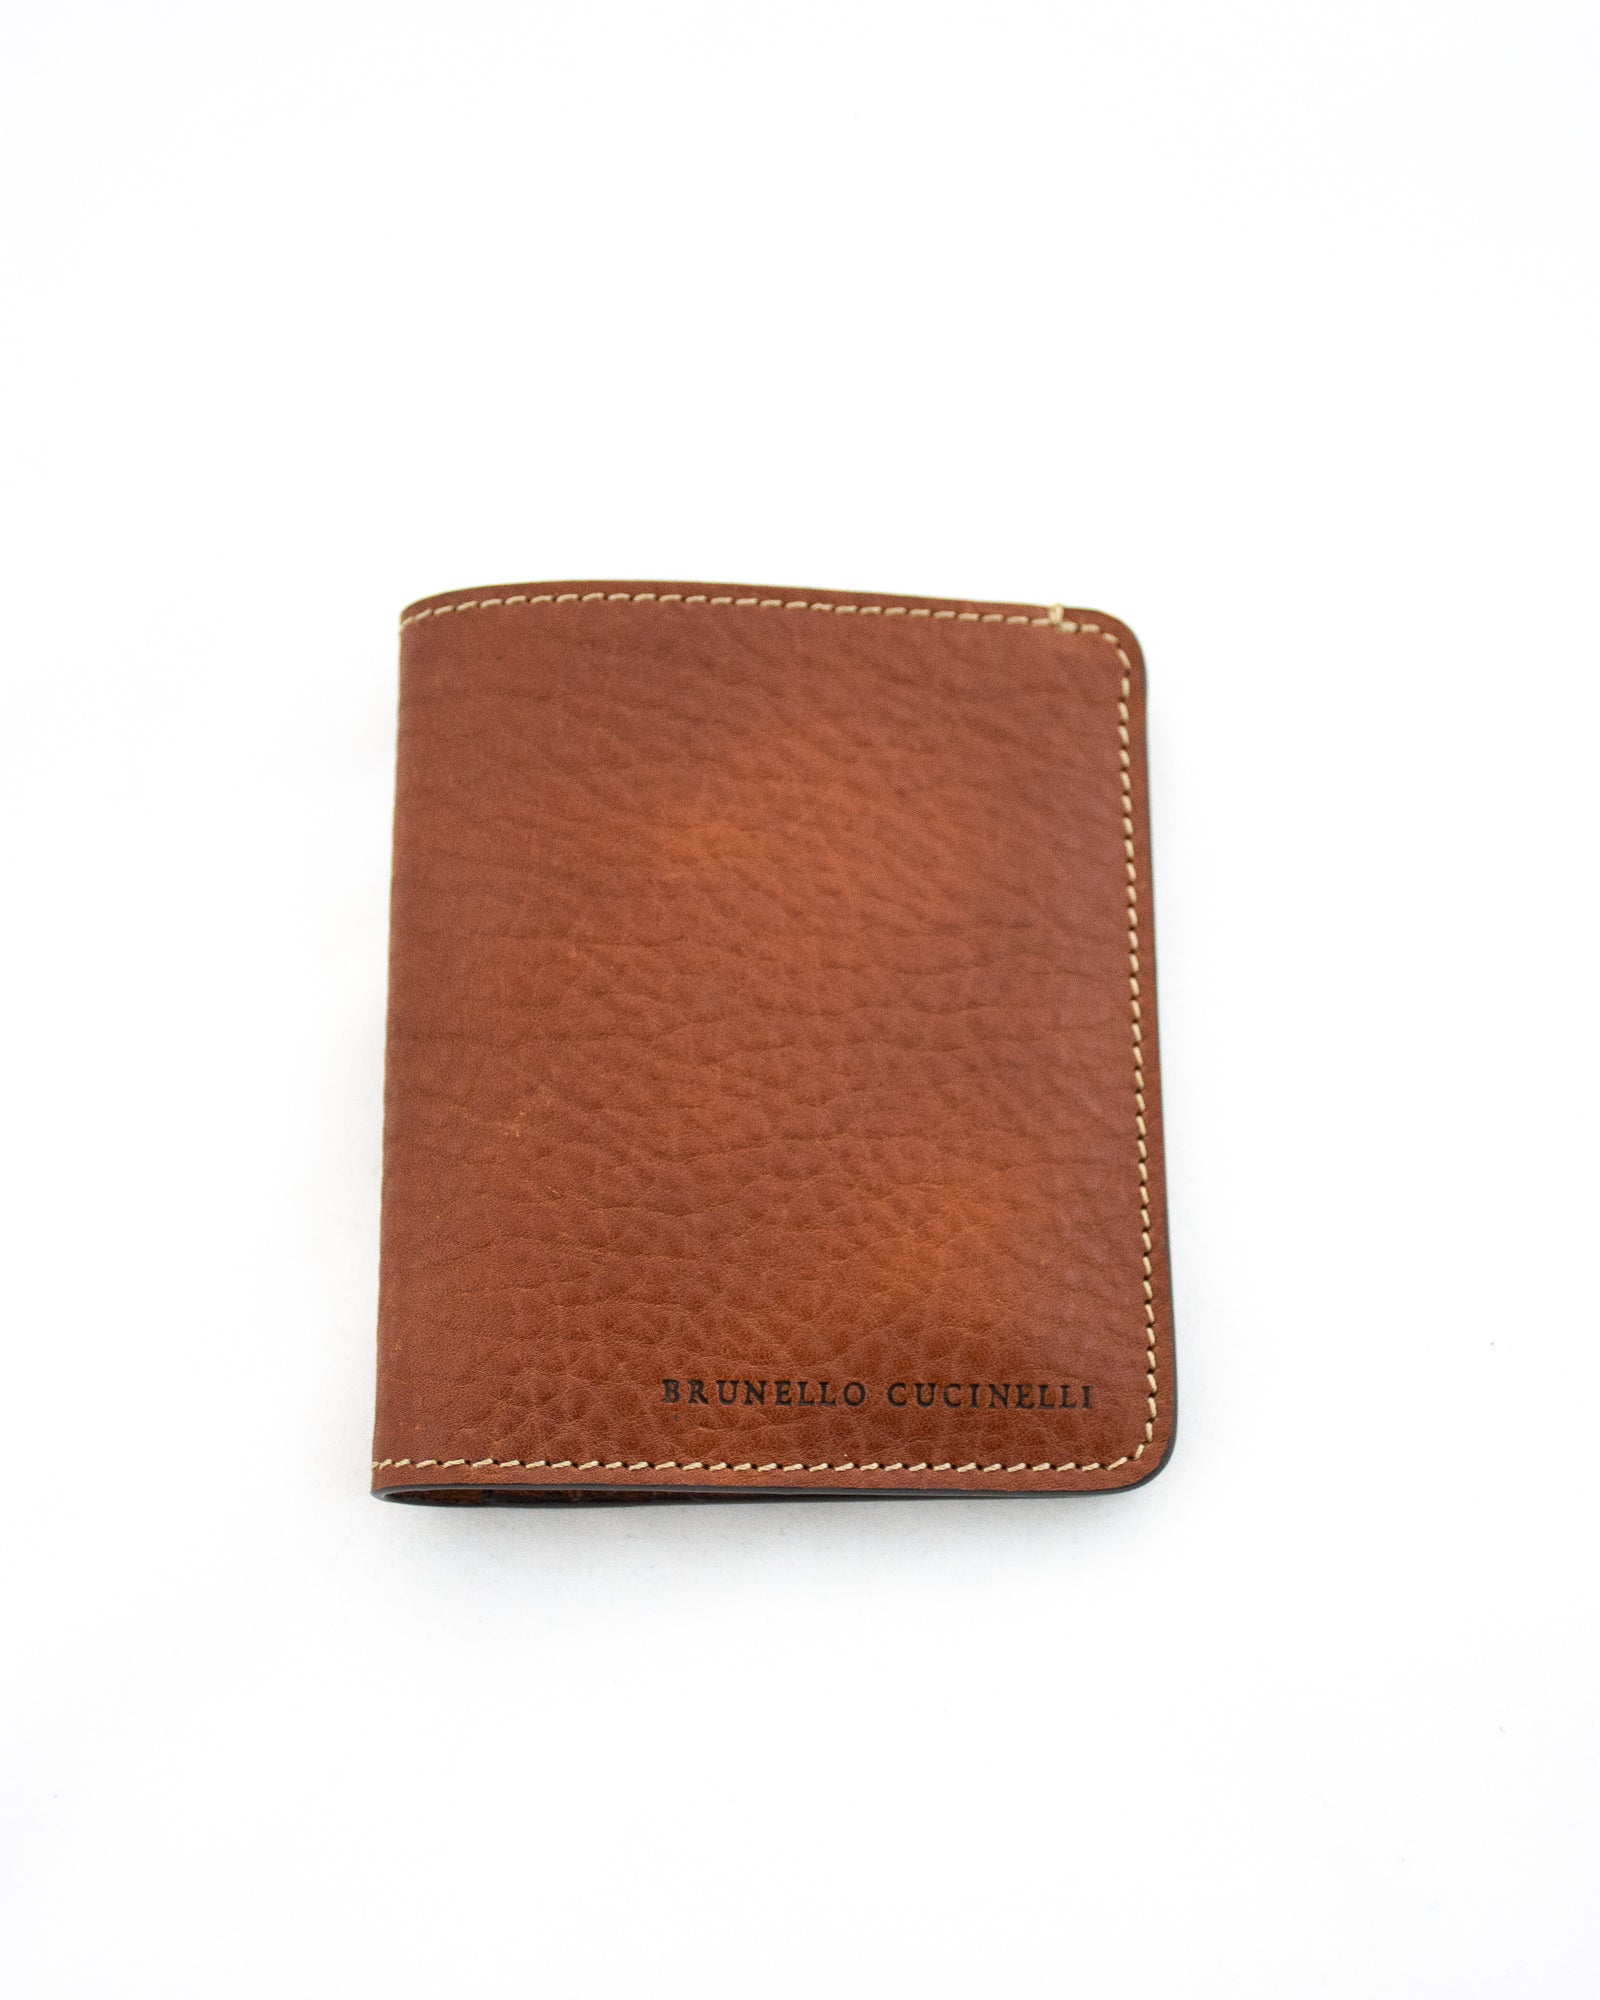 BRUNELLO CUCINELLI Card Holder